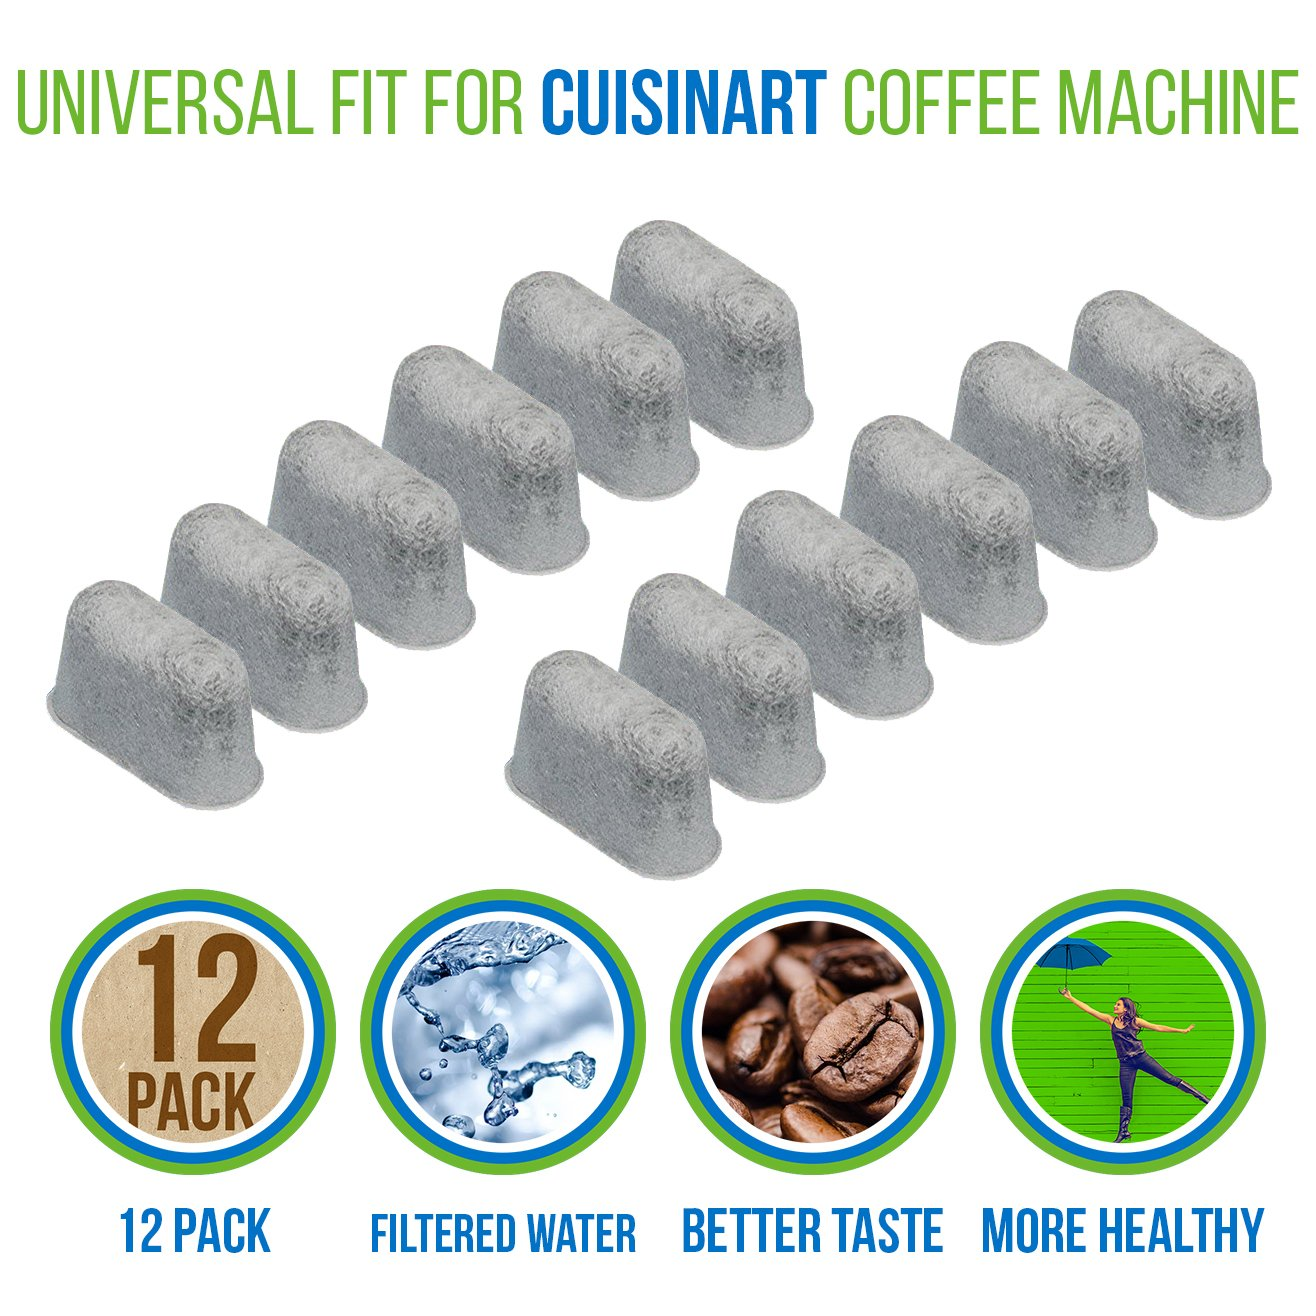 Cuisinart filters (12 pack)